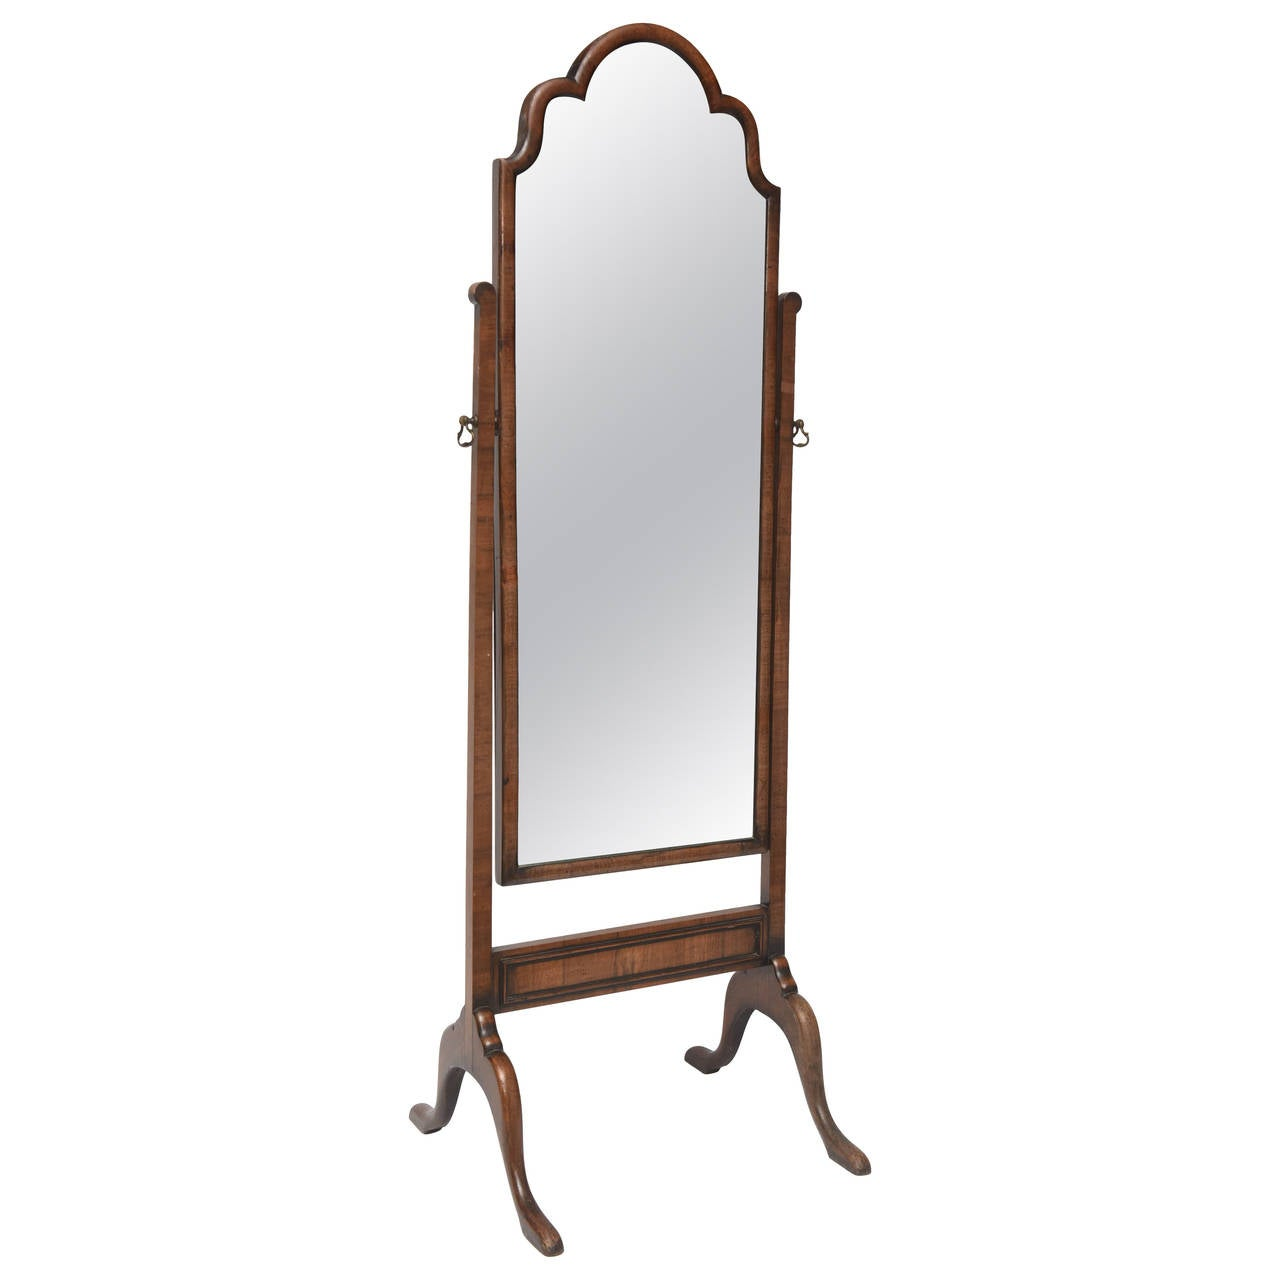 Georgian style psyche floor mirror at 1stdibs for Floor length mirror for sale